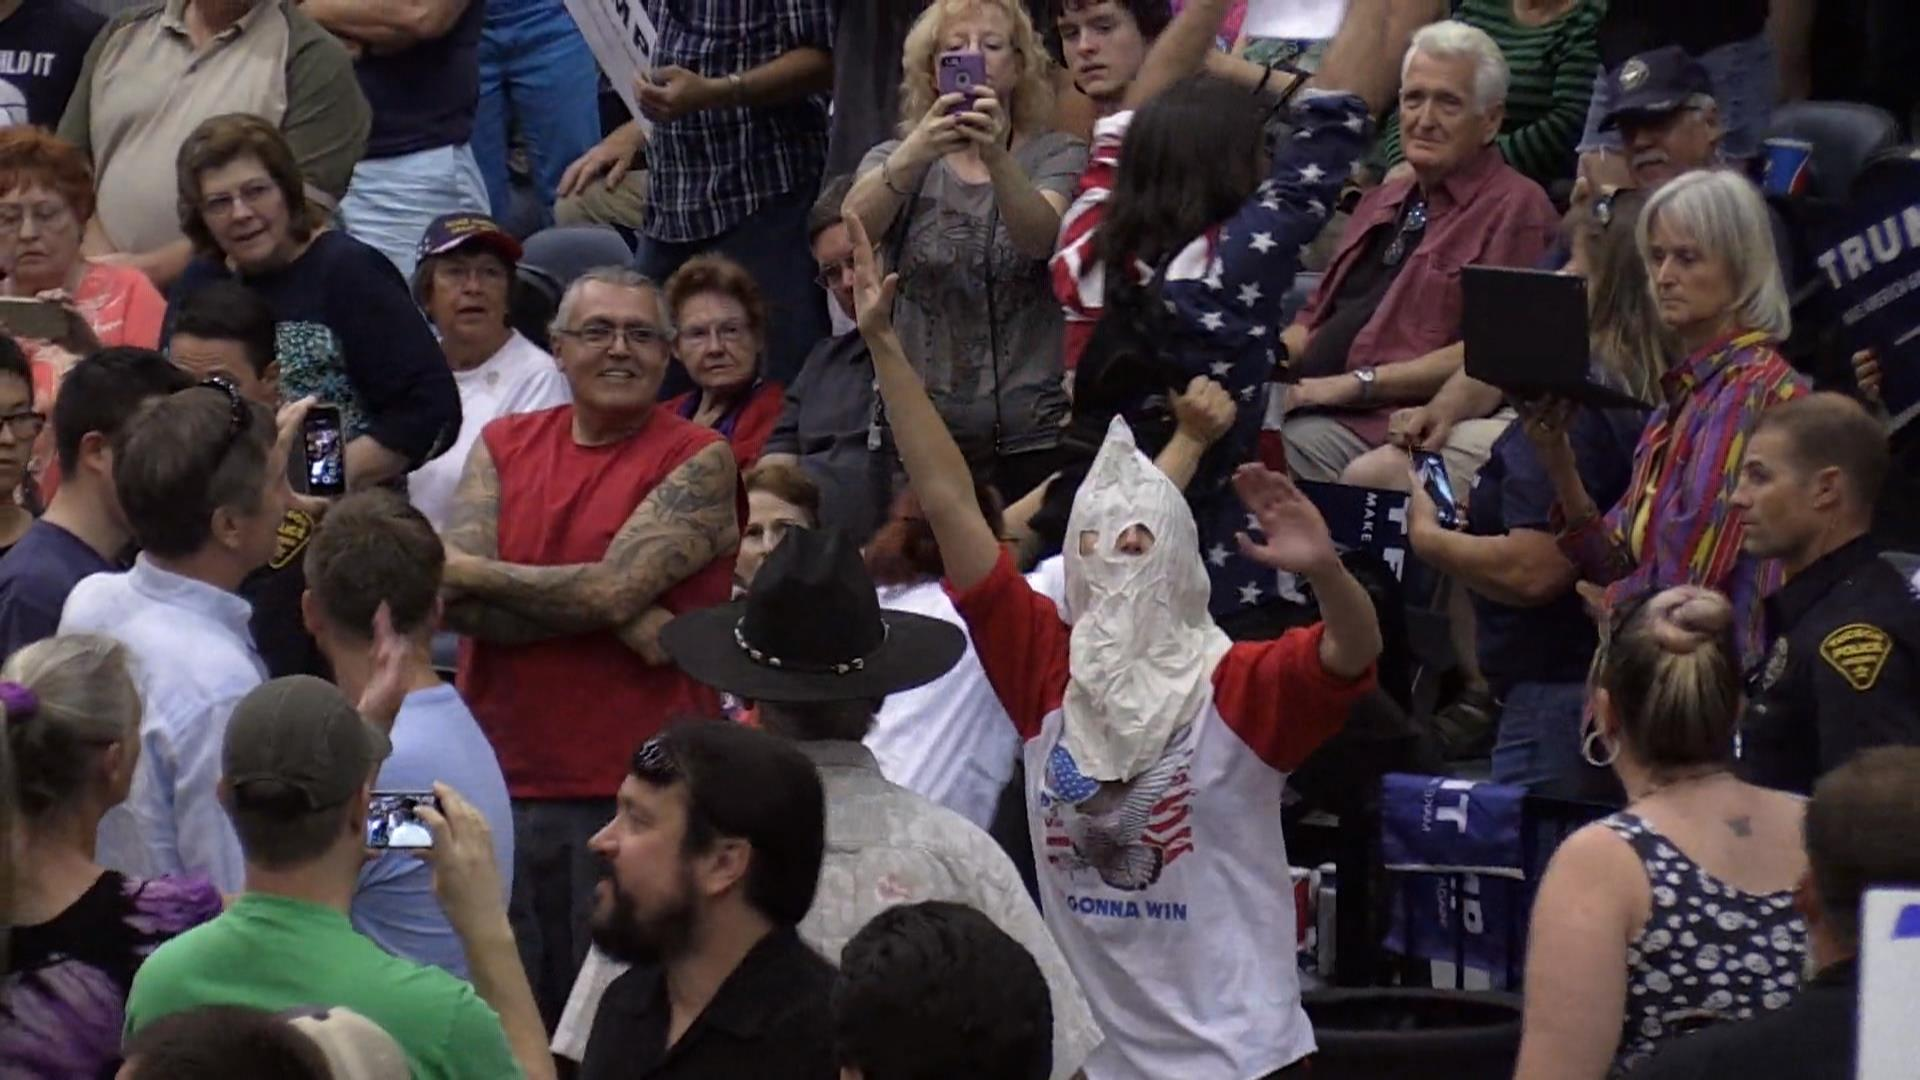 Man in Klan Outfit Disrupts Trump Rally - NBC News